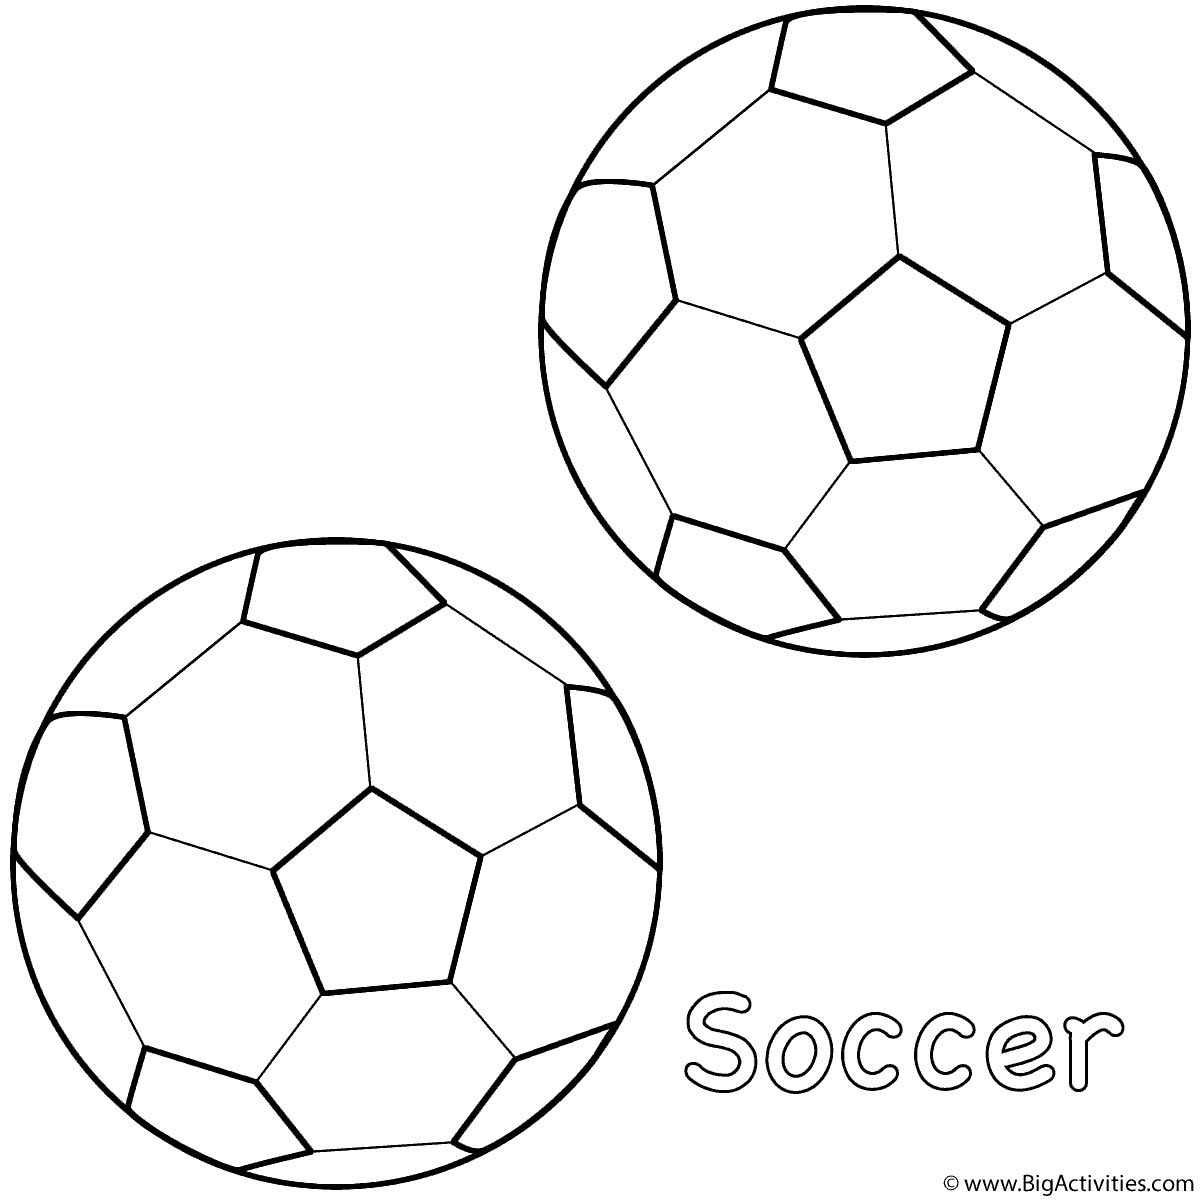 Soccer ball craft ideas - Coloring Page